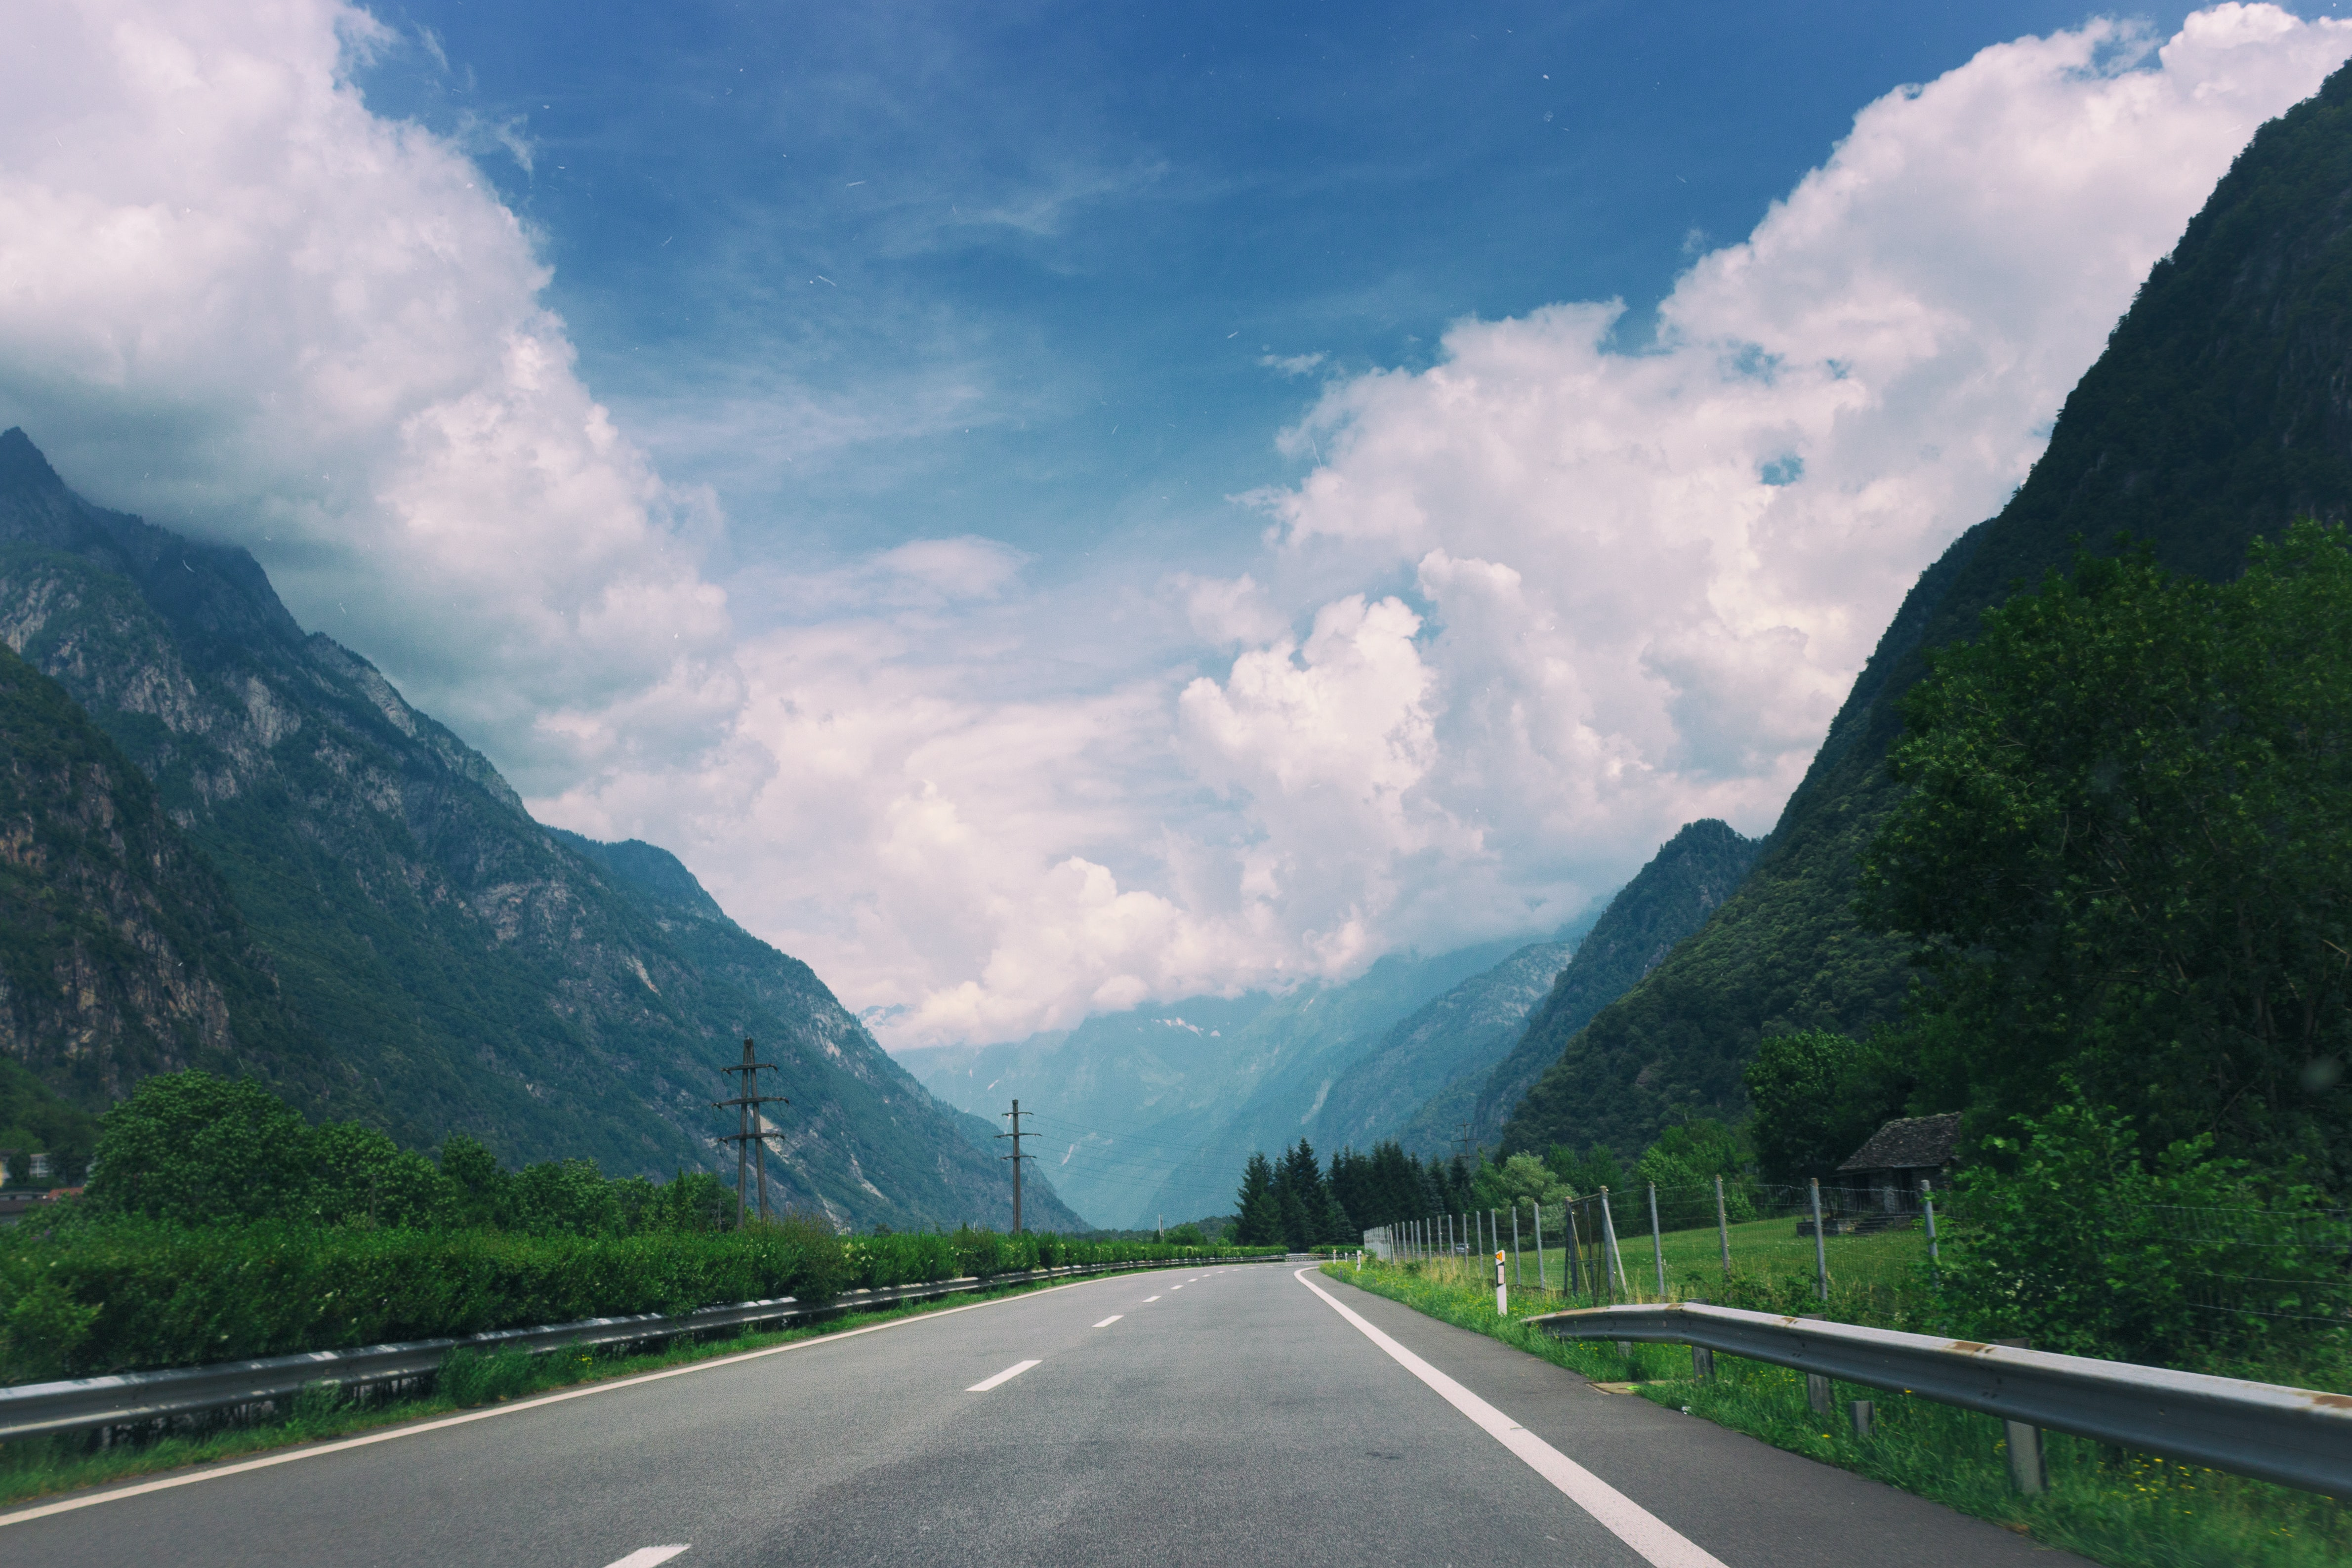 An empty road in a rural mountain valley on a cloudy day